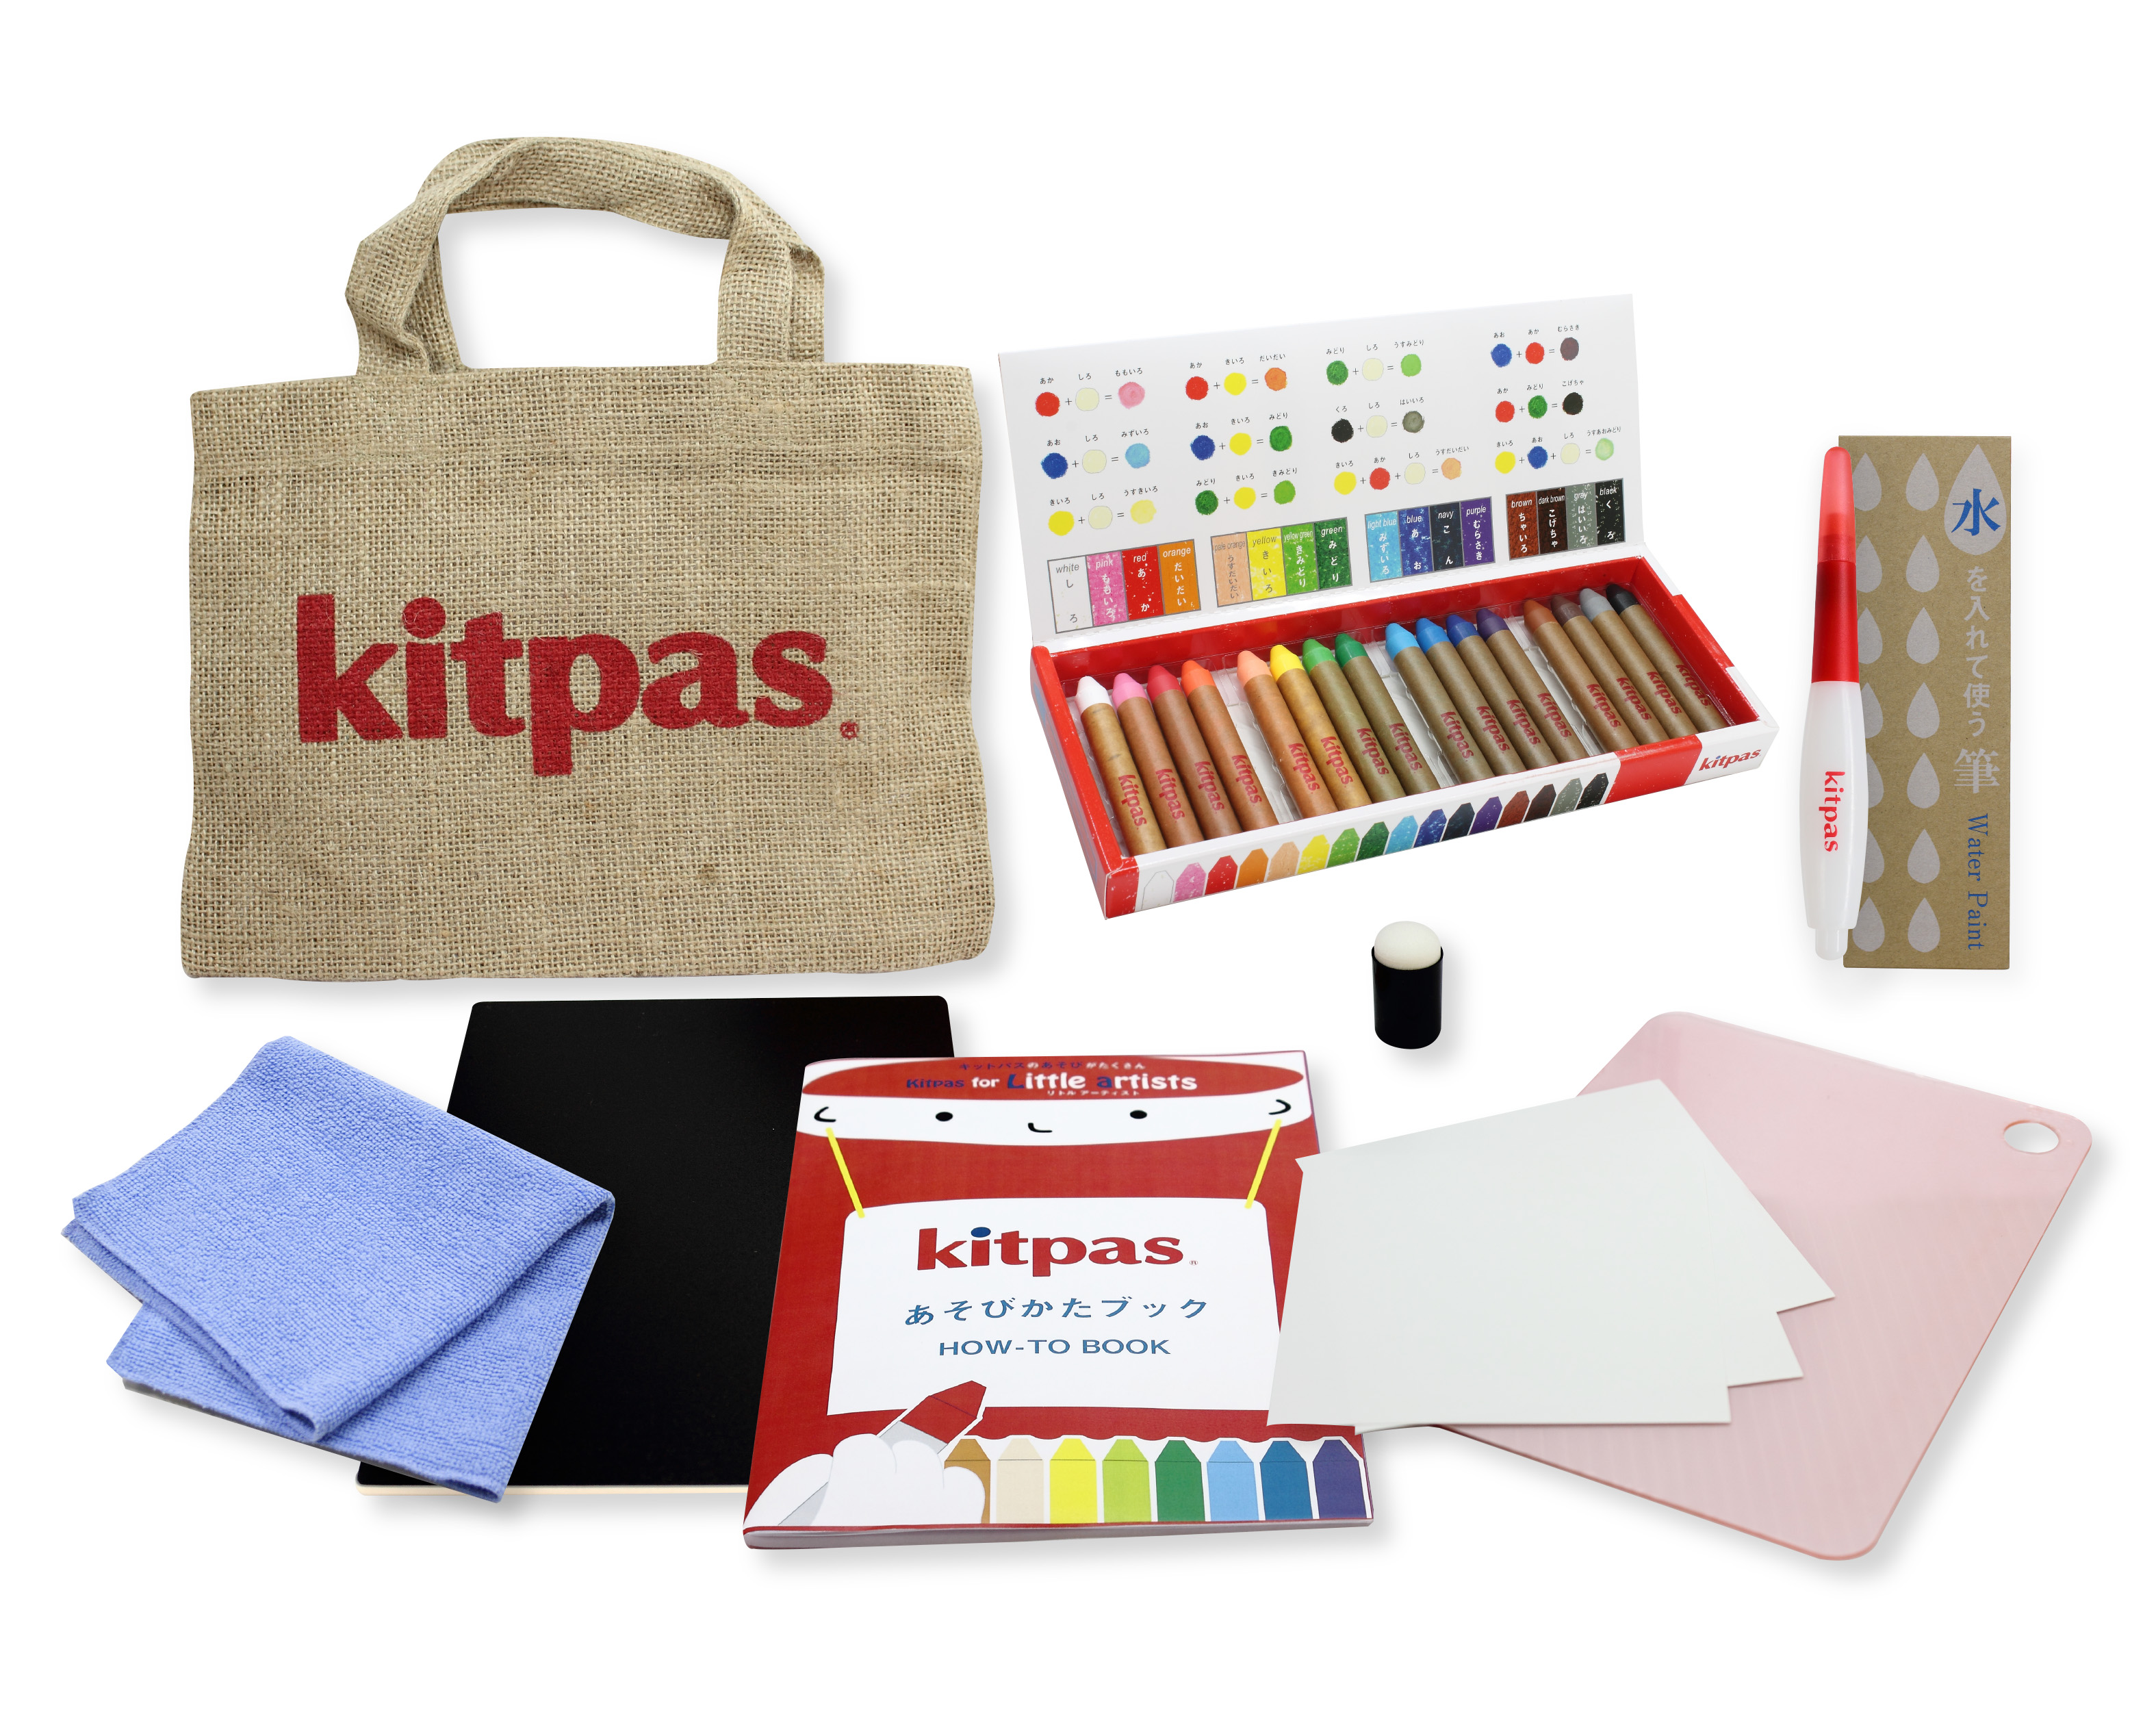 Kitpas - Little Artists set